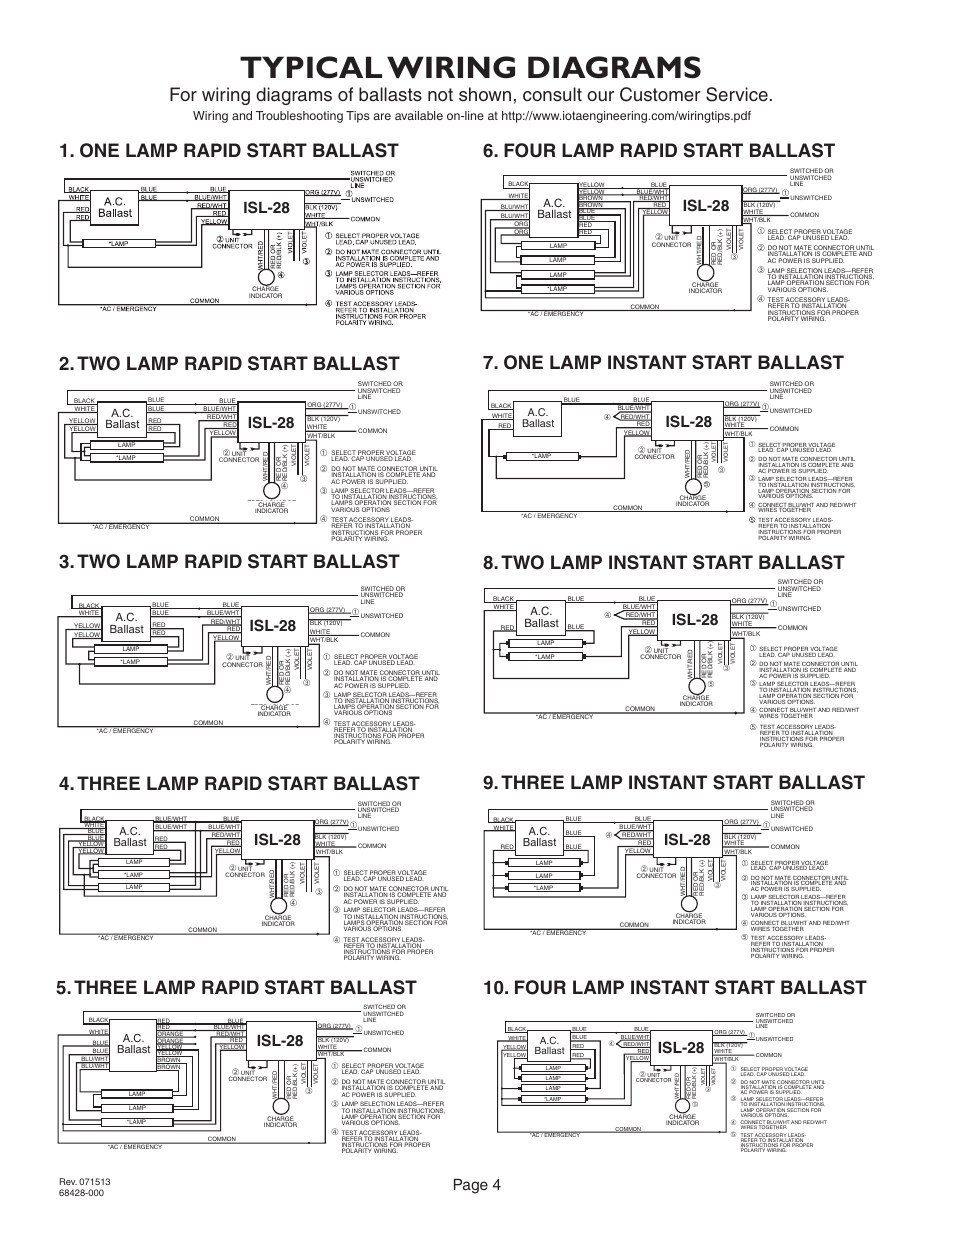 iota i 24 emergency ballast wiring diagram for hotel management er typical diagrams two lamp rapid start three lamptypical